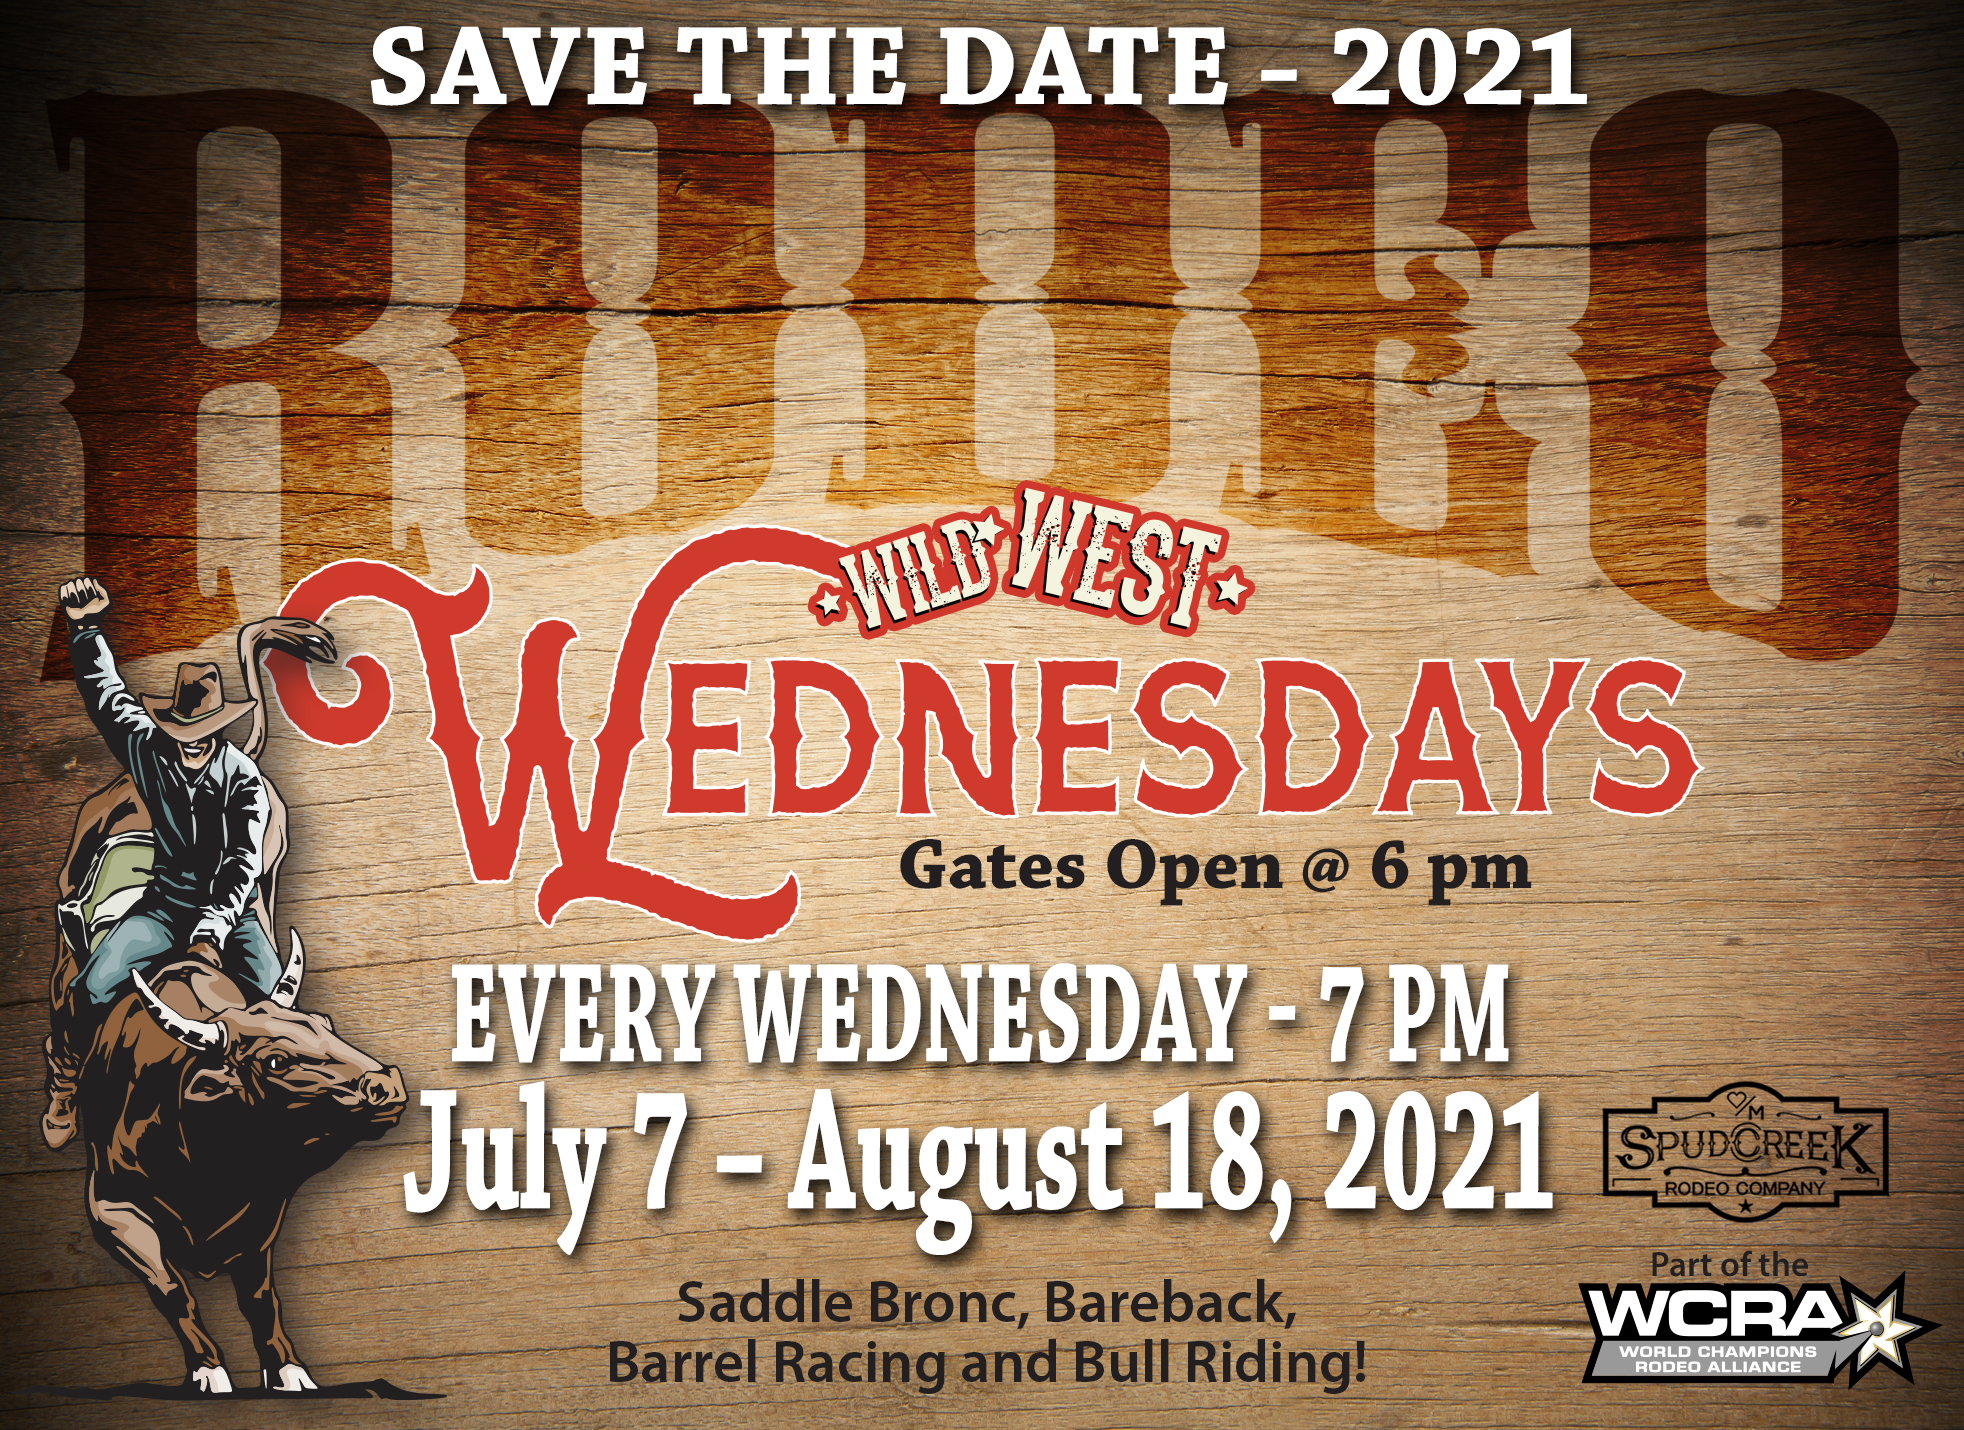 Hartranch 2021 Rodeo Save The Date Wild West Wednesdays Rodeos